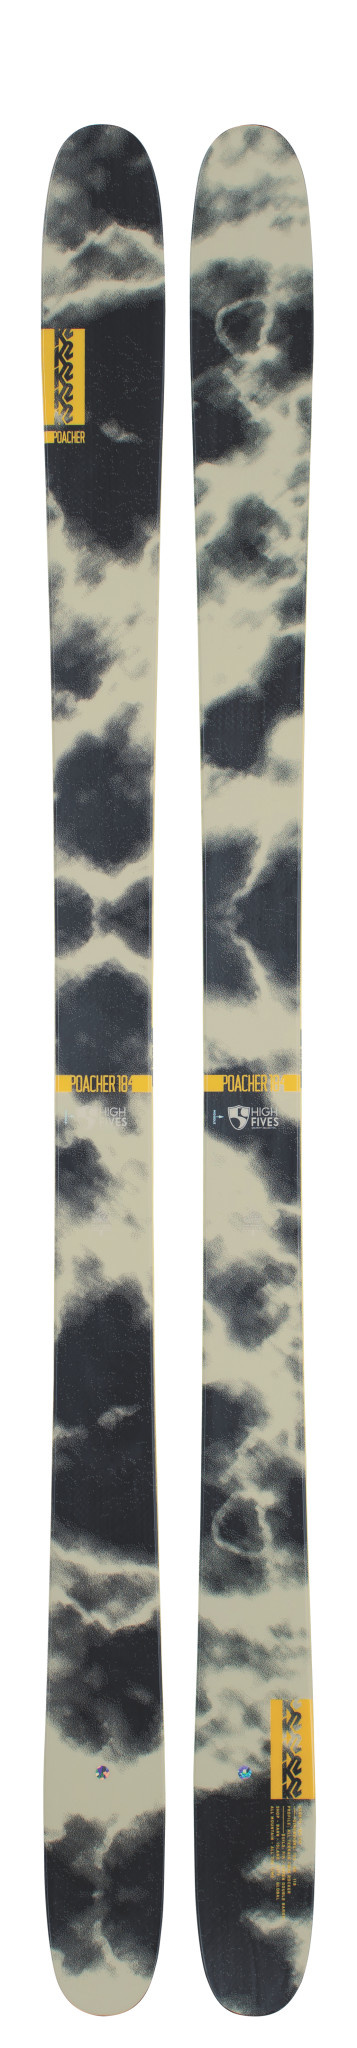 K2 K2 Men's Poacher Ski (2021)